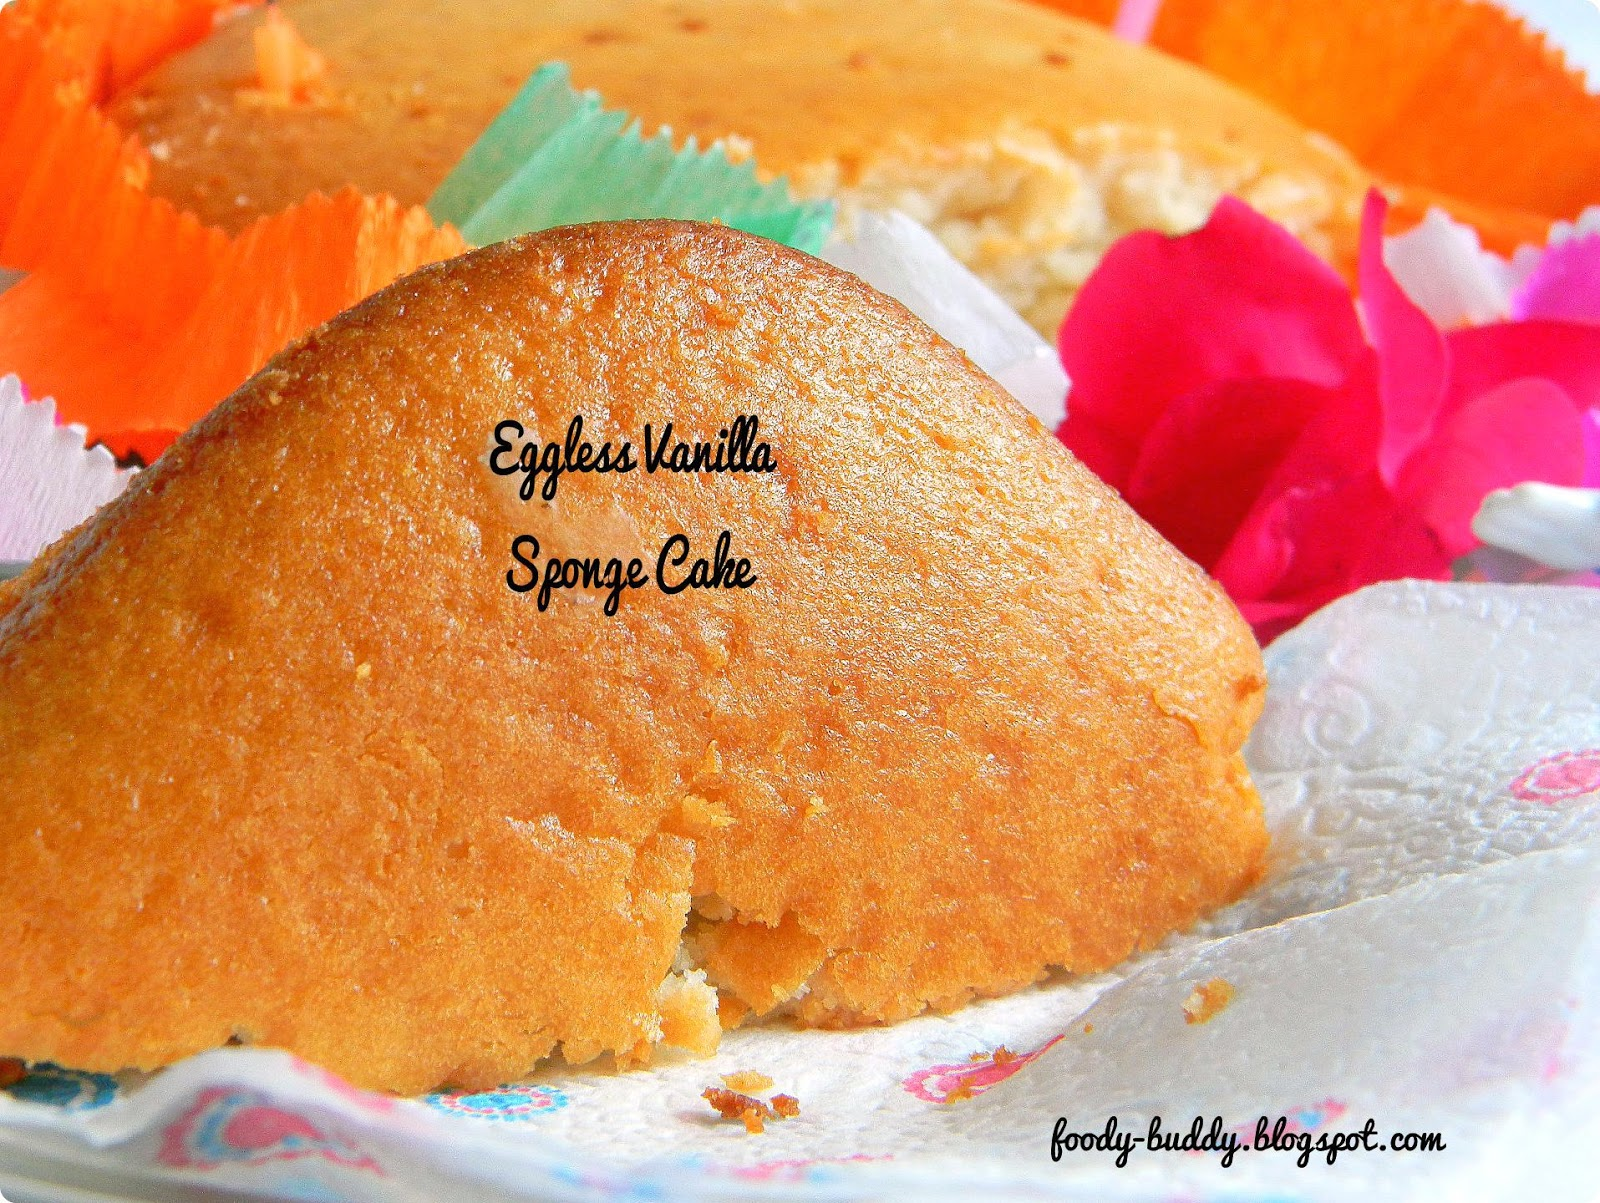 Cake Recipes With Pictures And Procedure : Eggless Vanilla Sponge Cake Using Yogurt / No Egg No ...